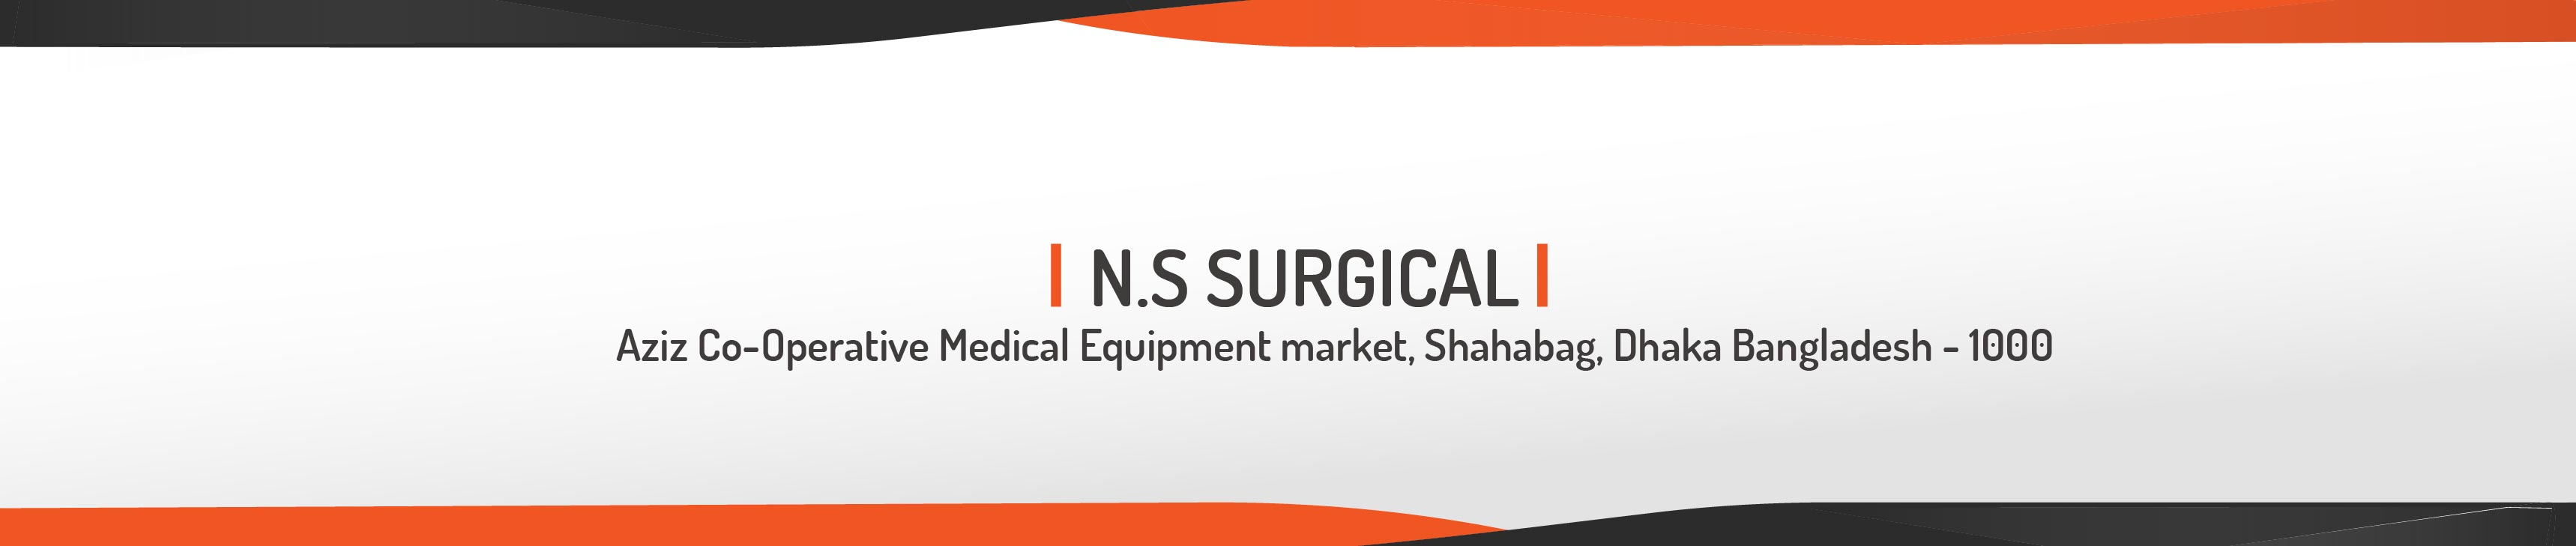 N.S SURGICAL